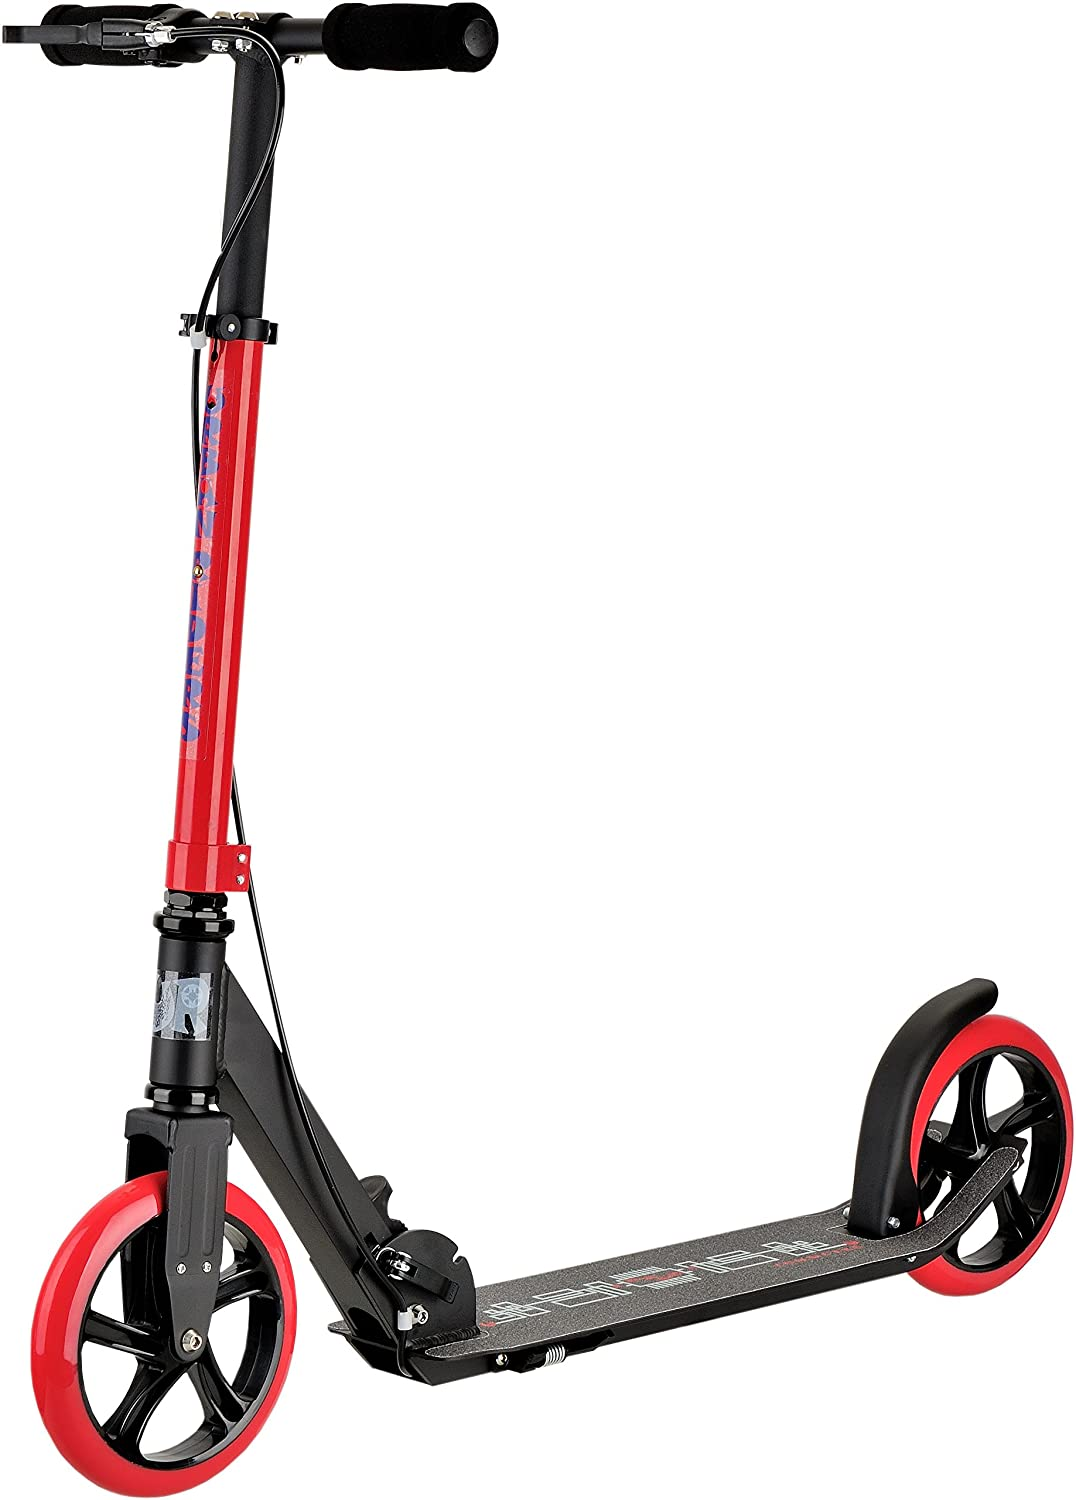 Commuter Deluxe Adult Kick Scooter